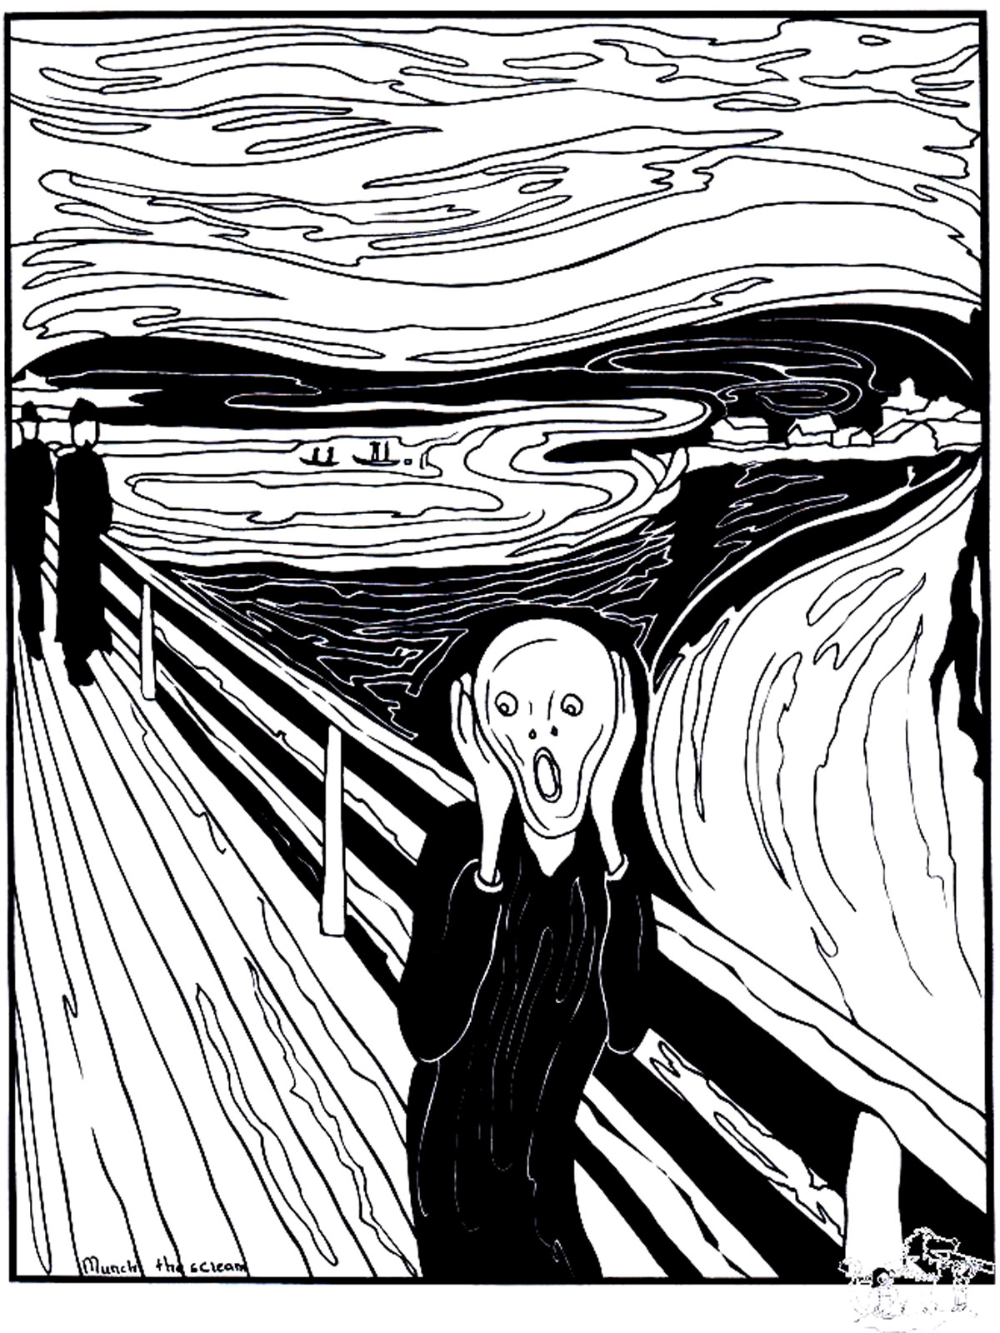 Munch The Scream The Scream Was Painted By The Expressionist Artist Edvard Munch In 1893 From The Gallery Masterpieces Just C Famous Art Art Colorful Art